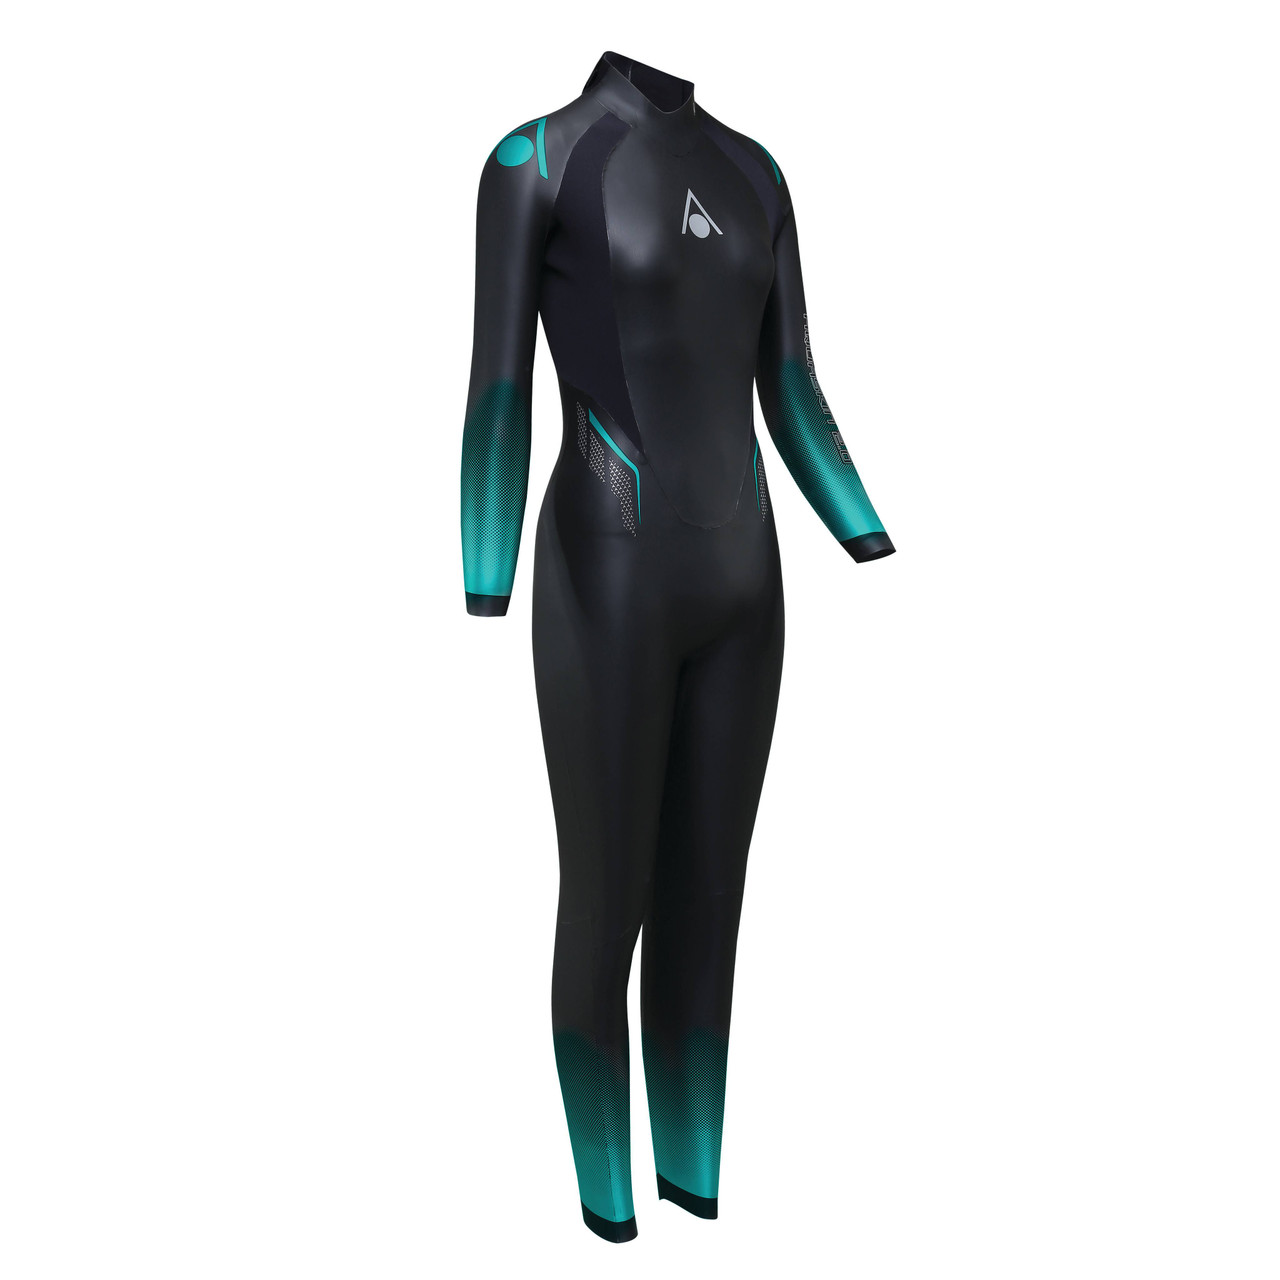 Aqua Sphere Women's Aqua Skin Full Suit - 2019 price